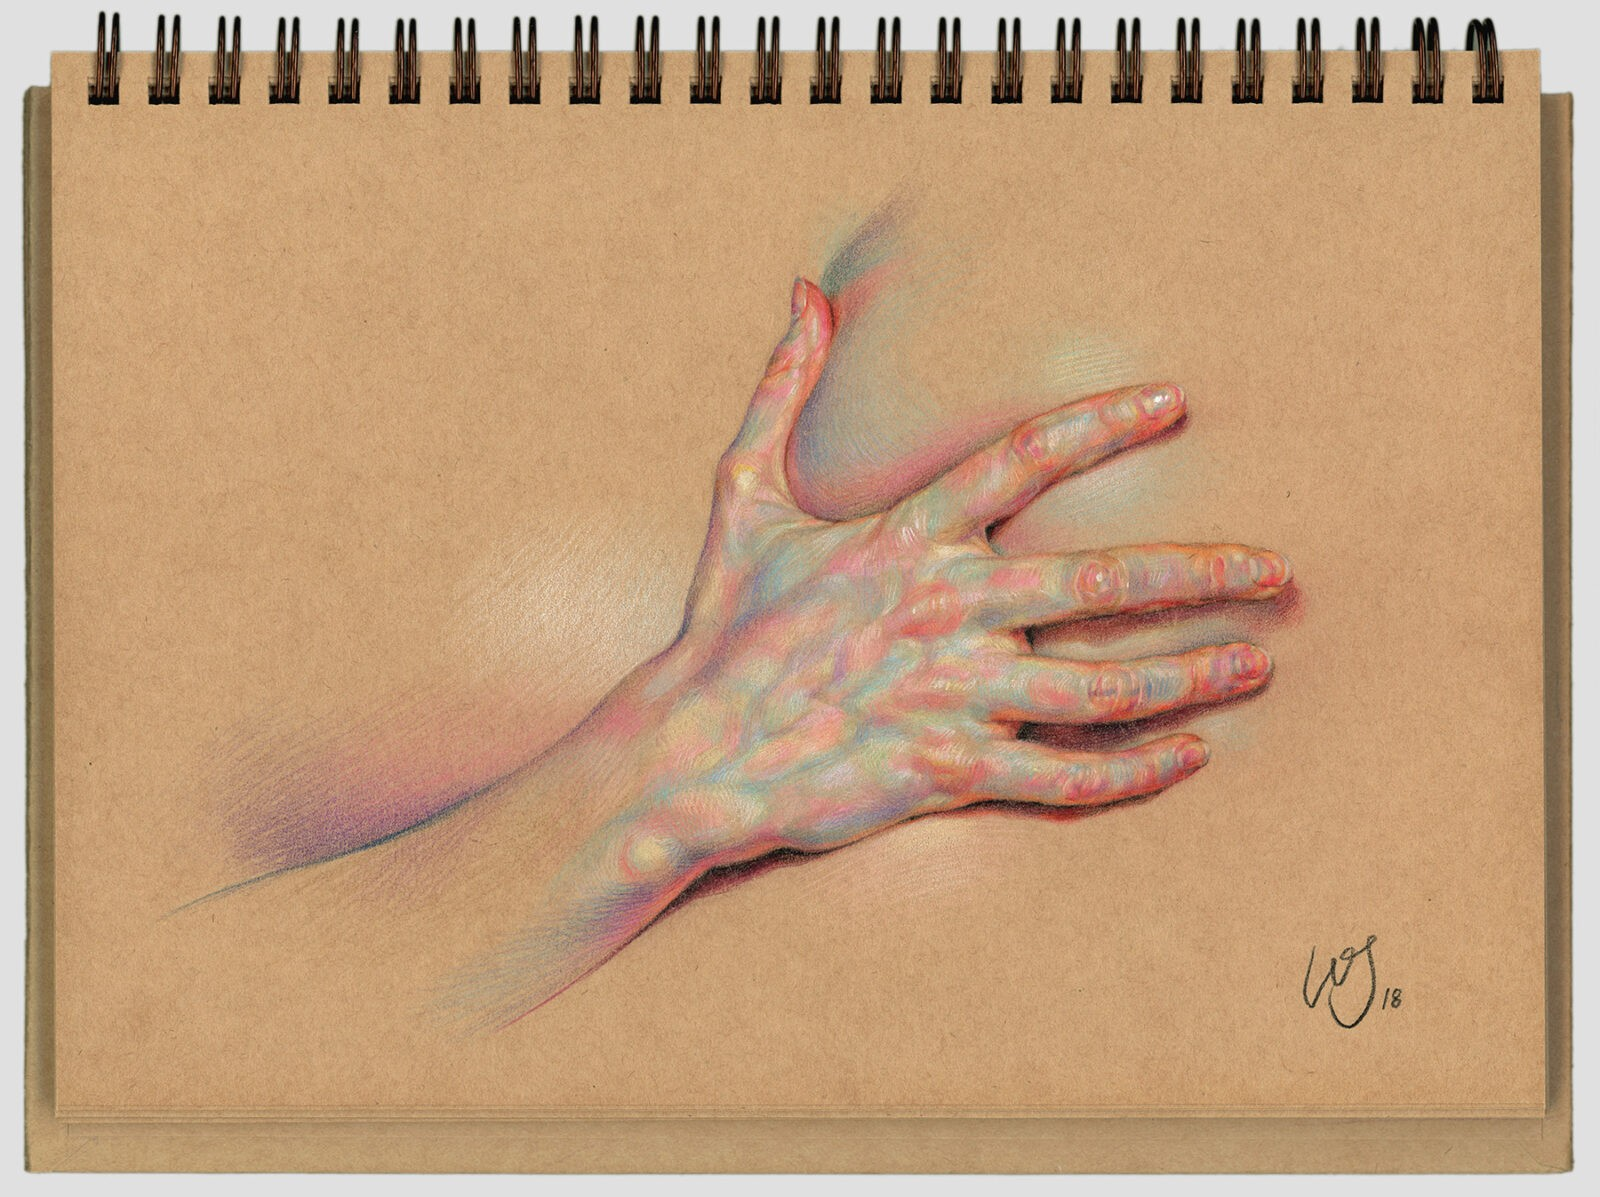 Dramatic Anatomical Drawings Comprised of Complex Hatched Colors by WanJim Gim